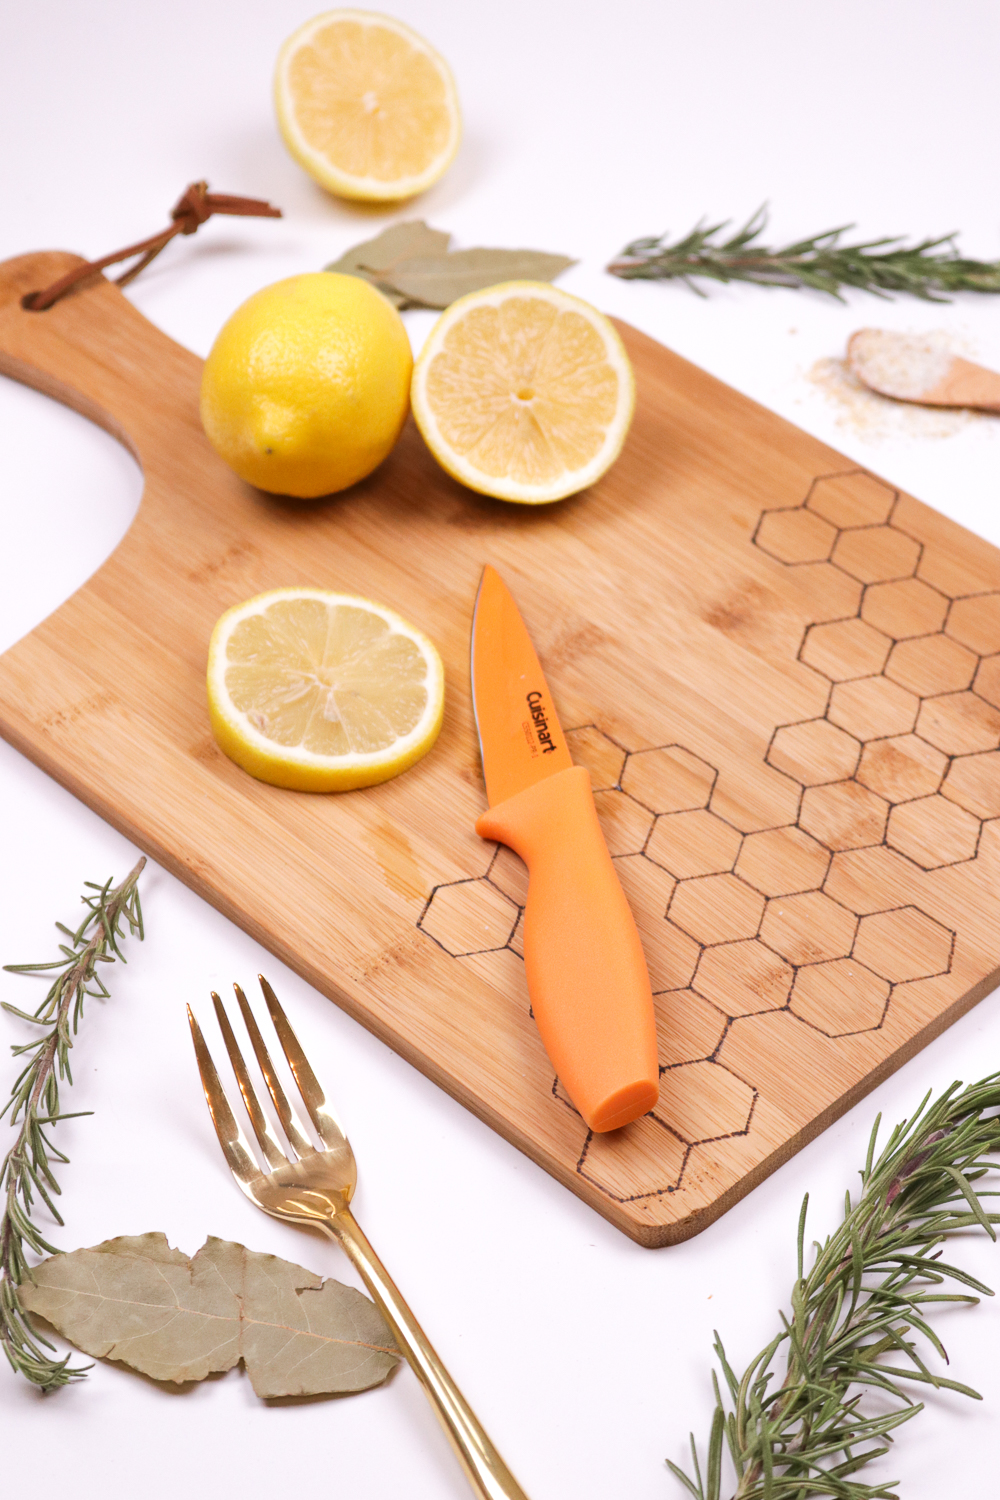 diy-honeycomb-wood-burned-cutting-board-7